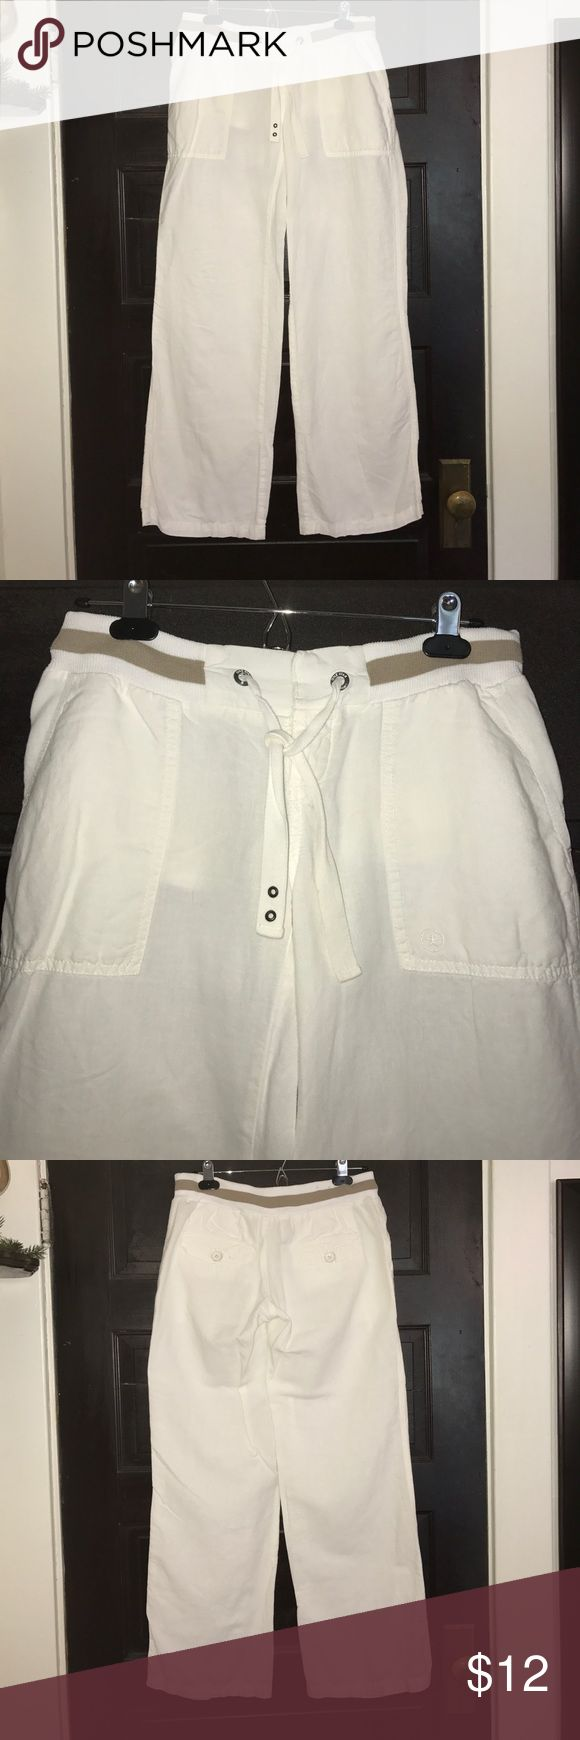 """SALE❤️ Converse white Linen cotton pants XS Converse white Linen cotton blend pants size XS, worn a few times but still in good condition. Inseam measures 30"""", Waist is 15"""" but also elastic. Converse Pants"""